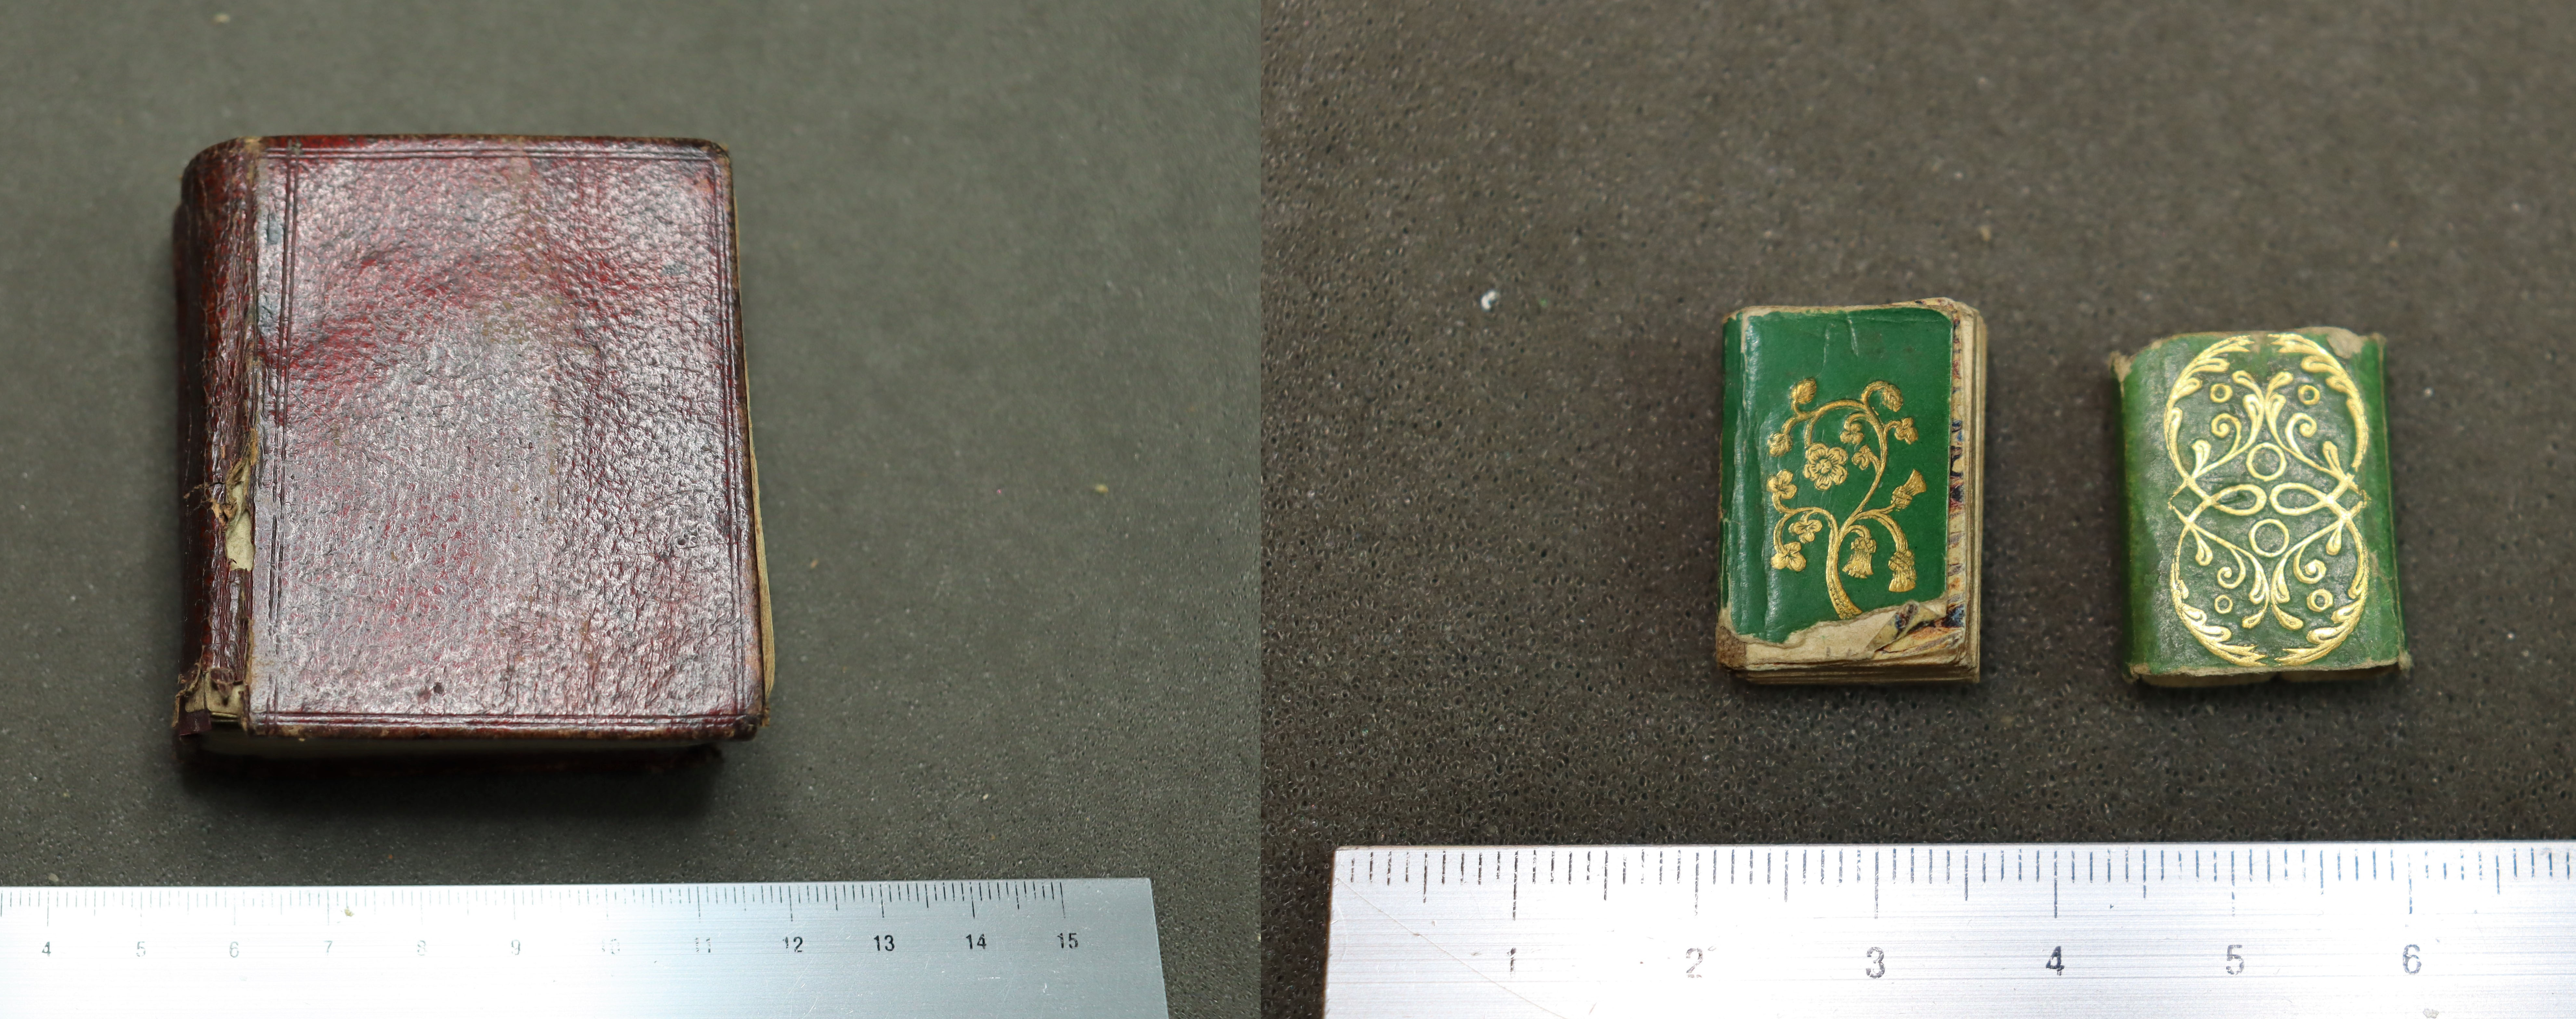 a composite image of two miniature books on grey background, one book is red the other is green with gold decorations